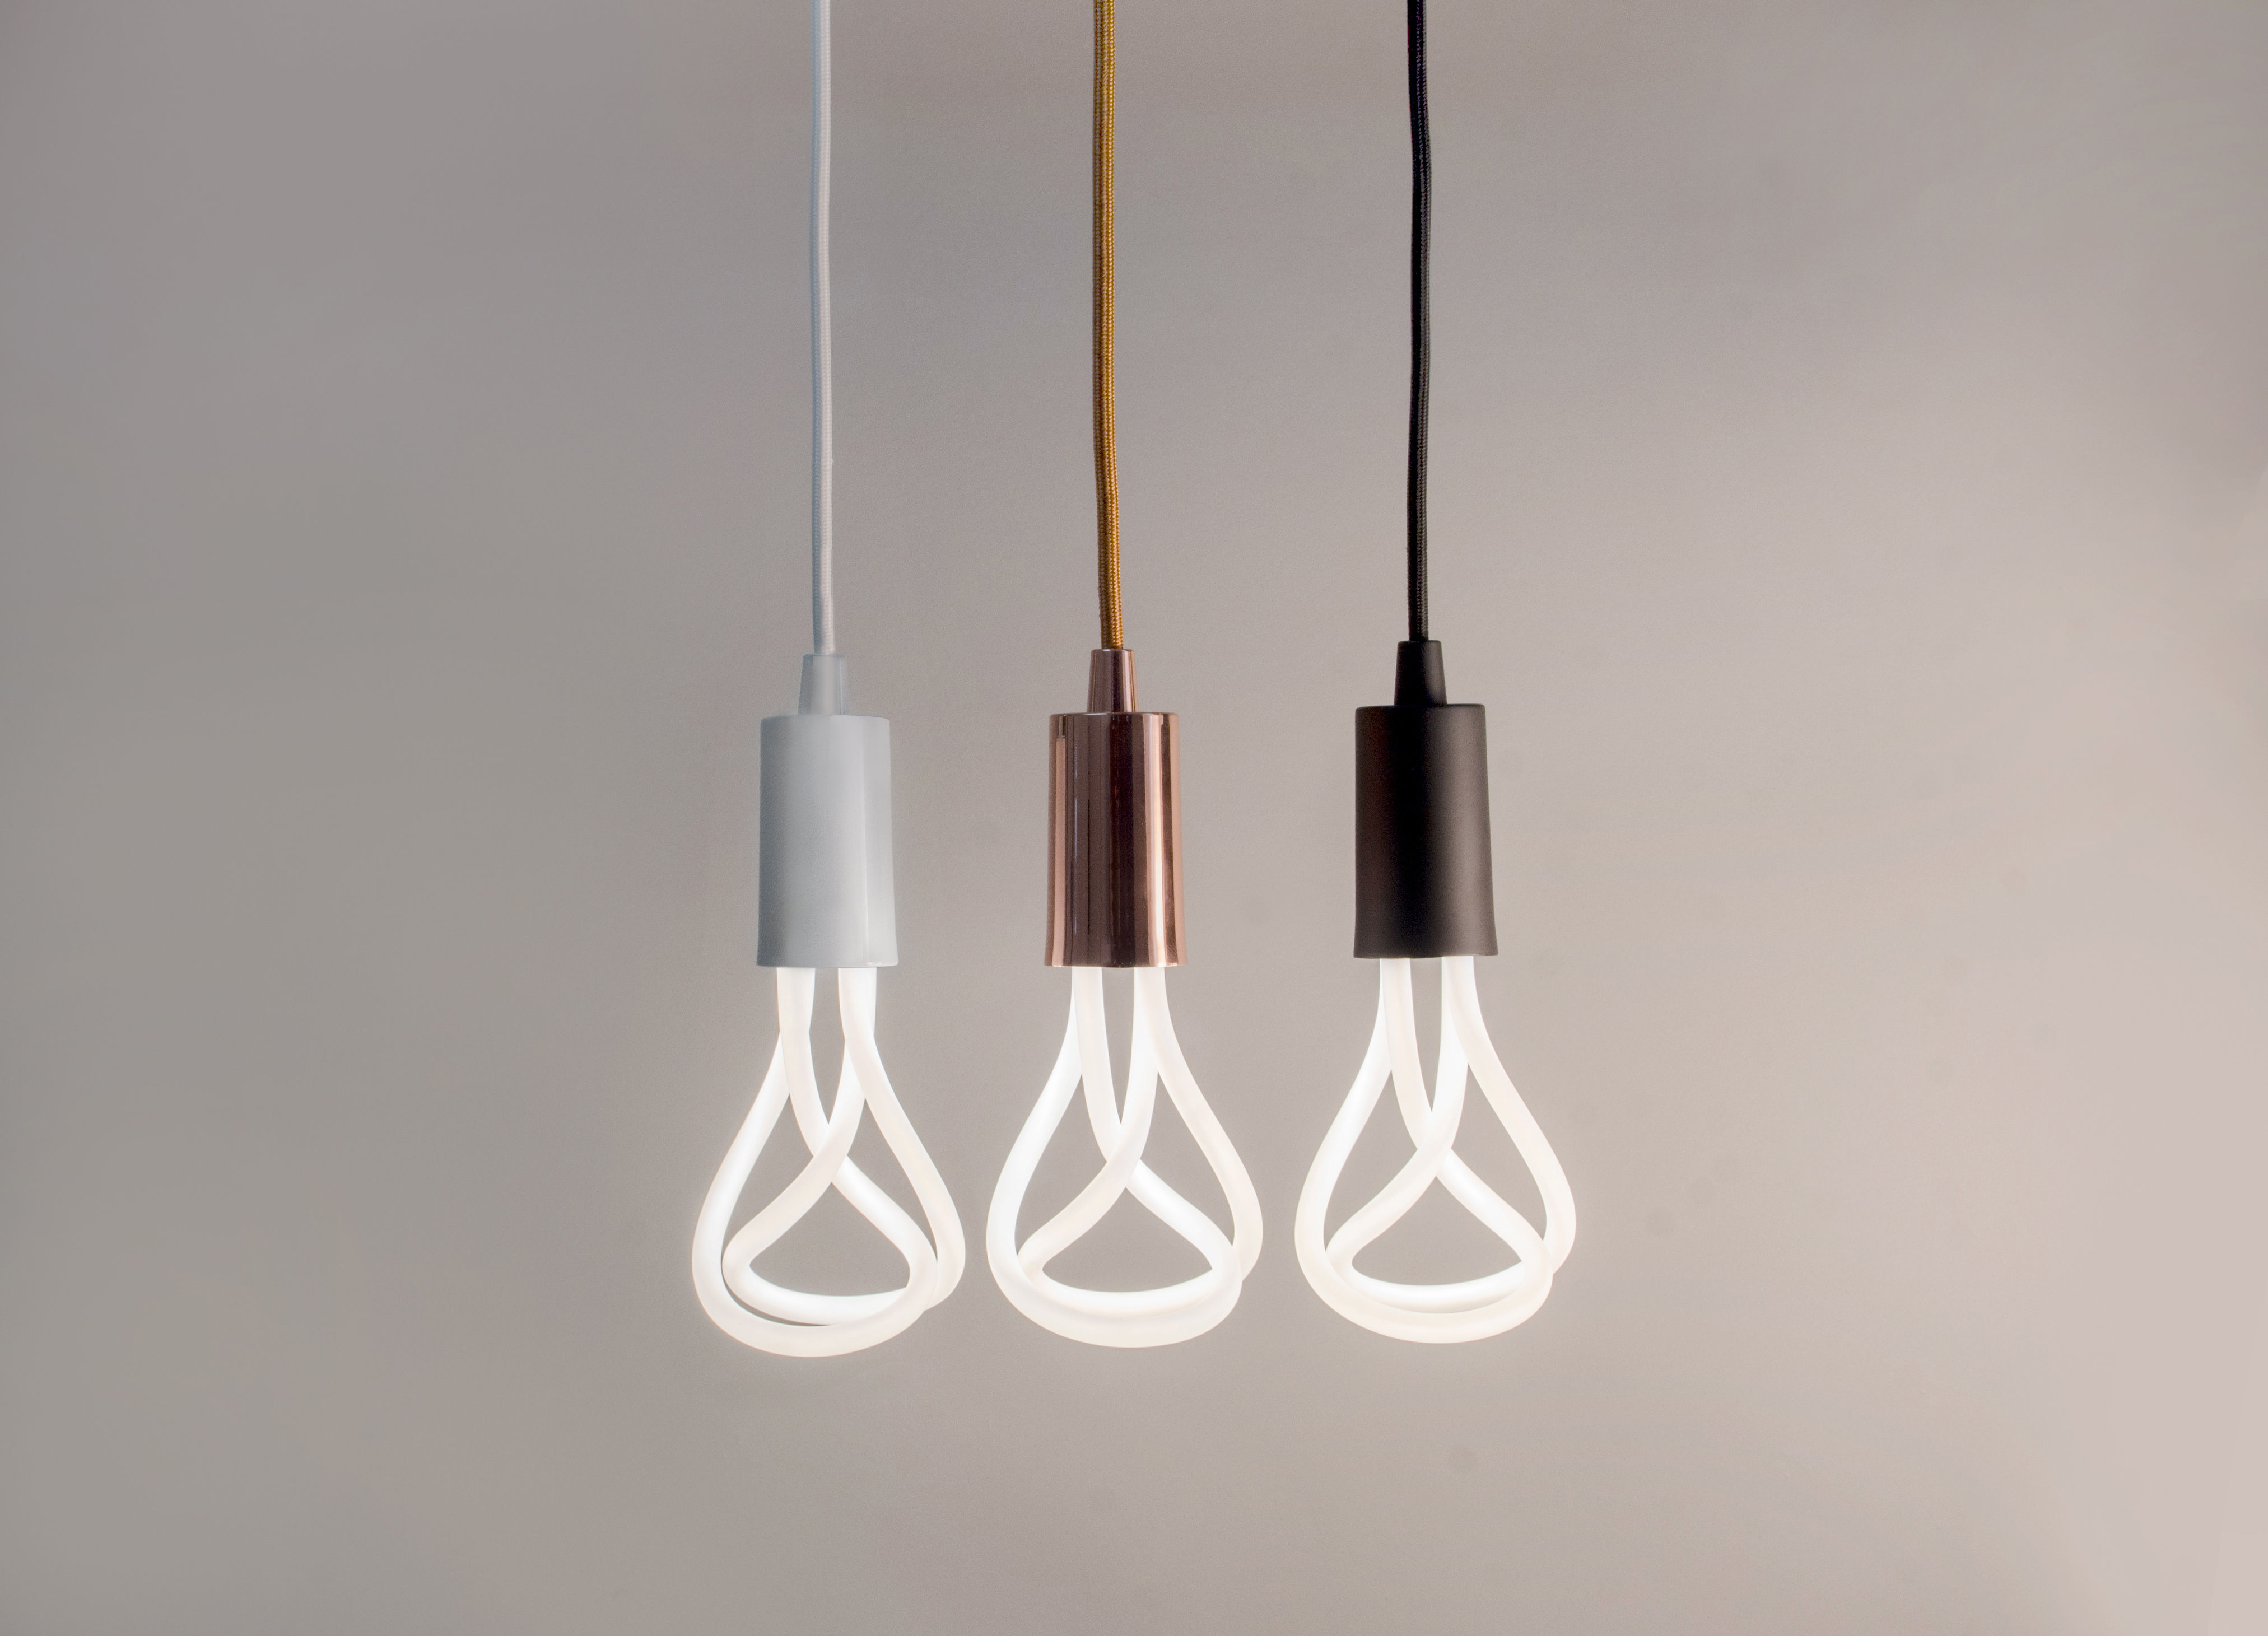 001 Incluse Led Drop Cap Ampoule Suspension Plumen dCxoBre